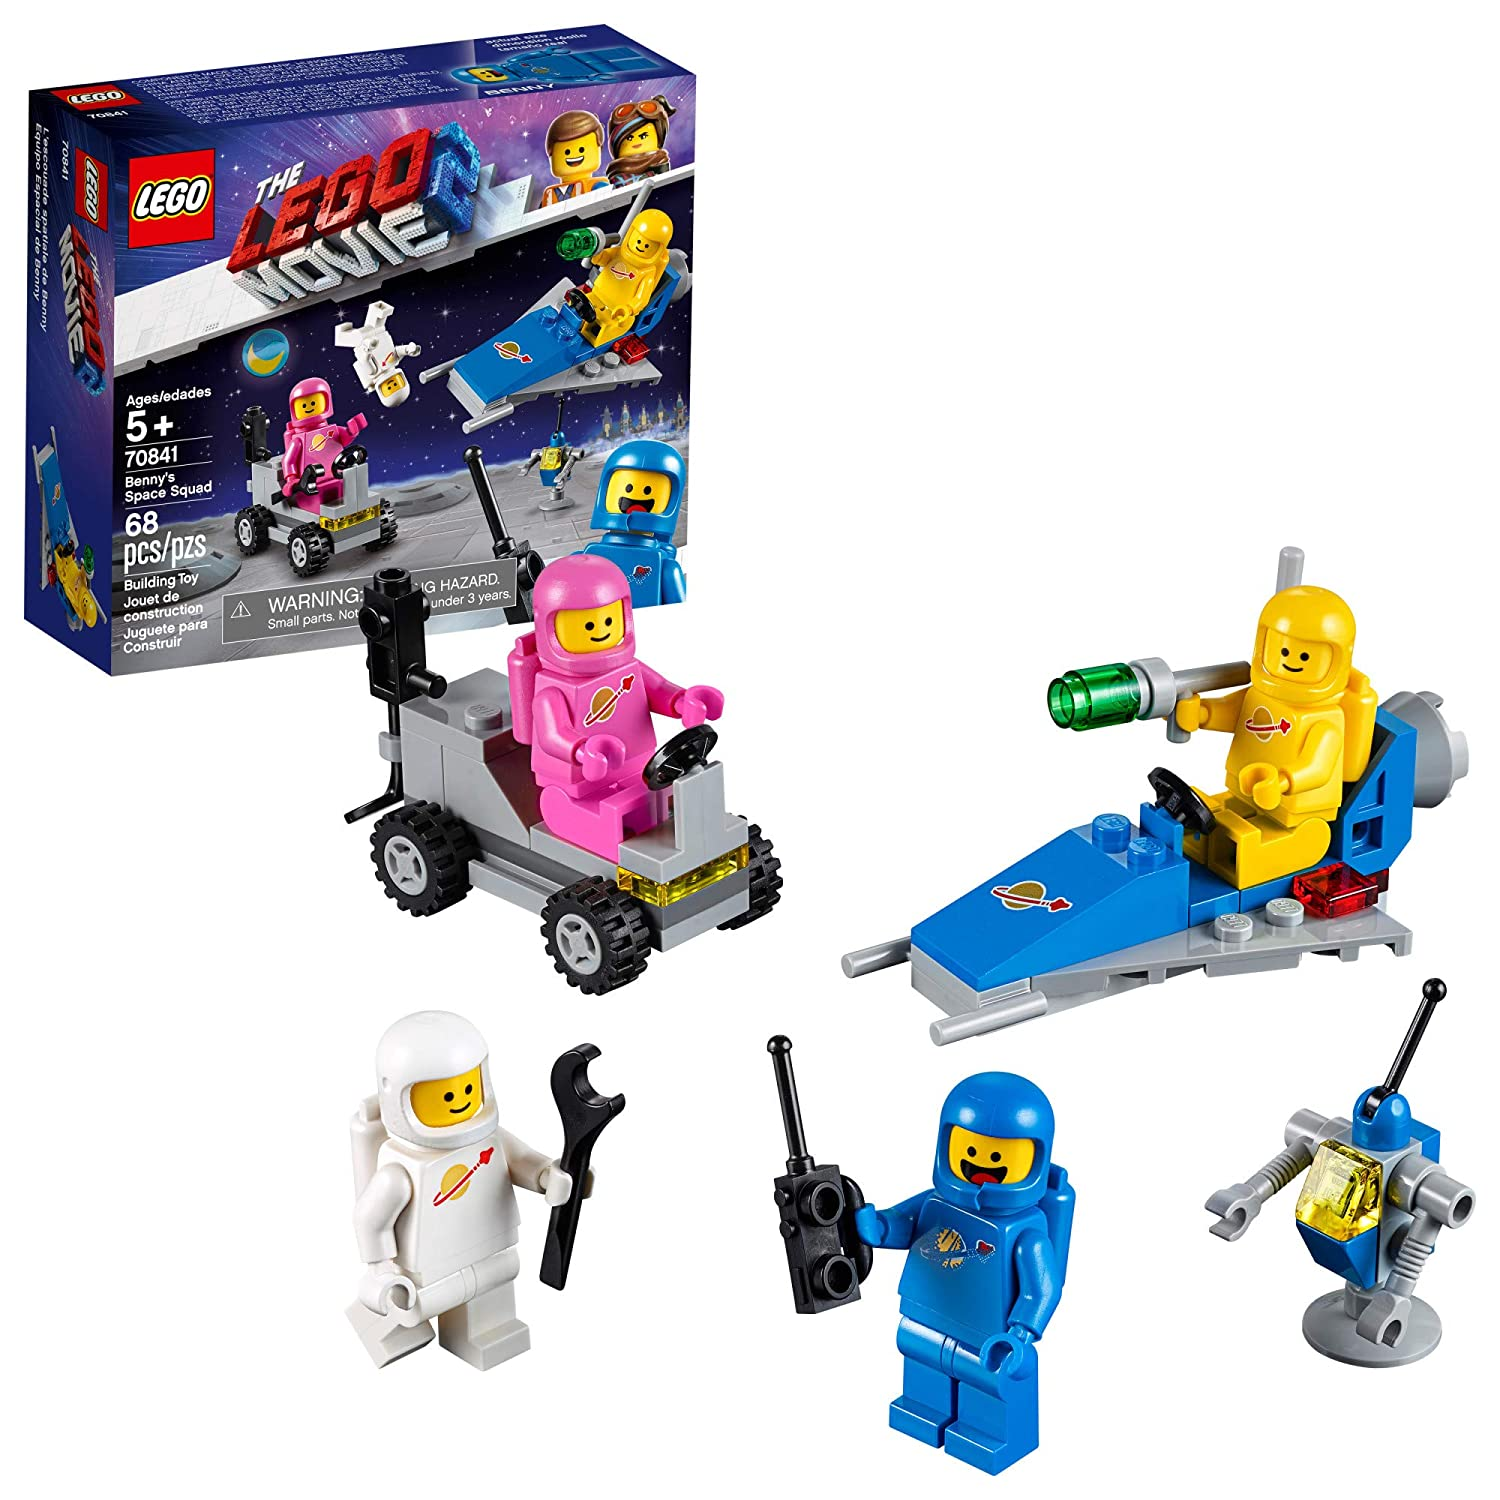 112dfba7de6fe LEGO THE LEGO MOVIE 2 Benny's Space Squad 70841 Building Kit, Kids Playset  with Space Toys and Astronaut Figures, New 2019 (68 Pieces)